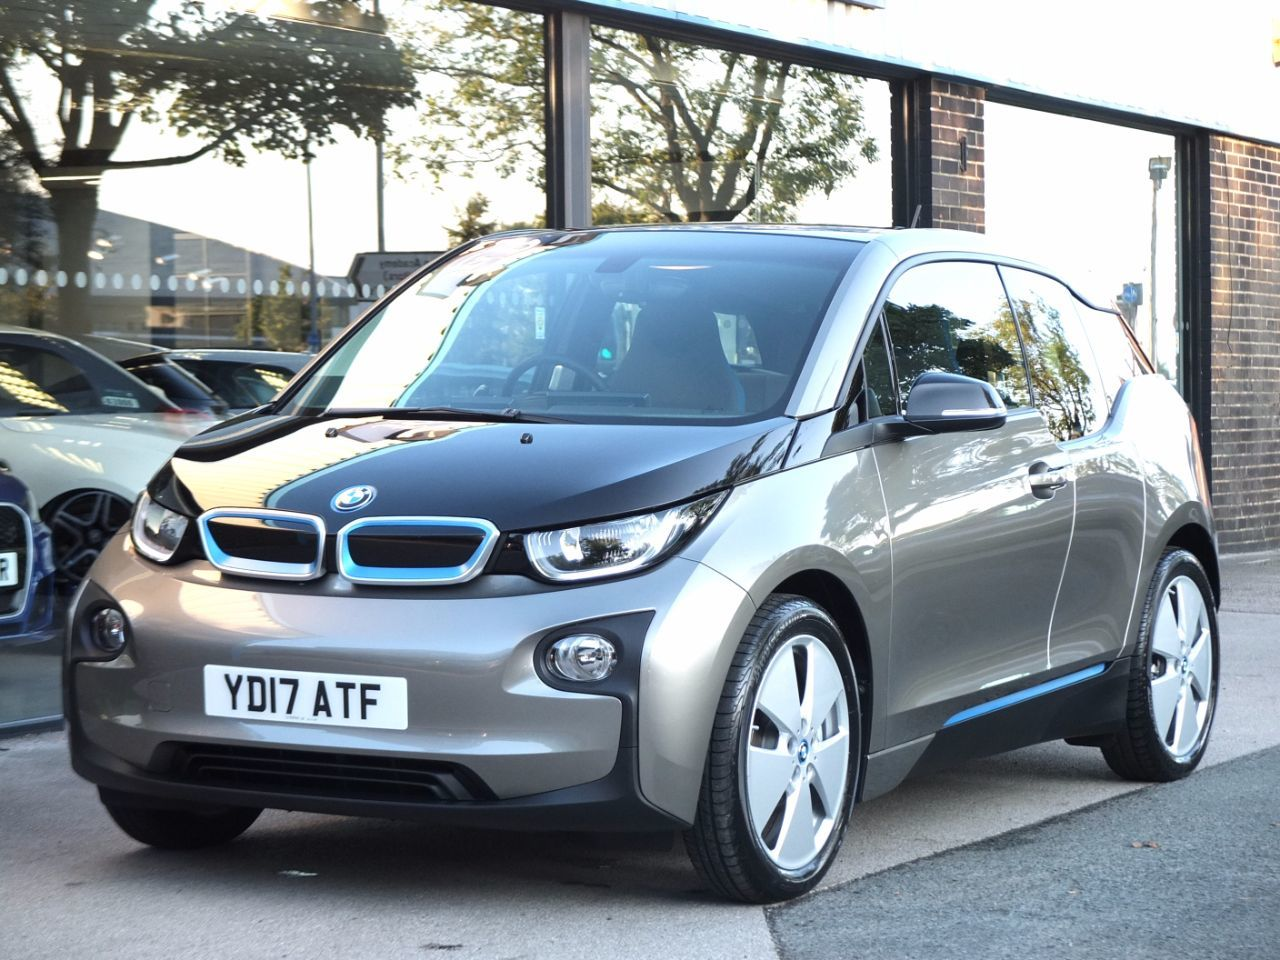 BMW I3 0.6 94Ah Range Extender Auto Hatchback Electric Platinum Silver MetallicBMW I3 0.6 94Ah Range Extender Auto Hatchback Electric Platinum Silver Metallic at fa Roper Ltd Bradford